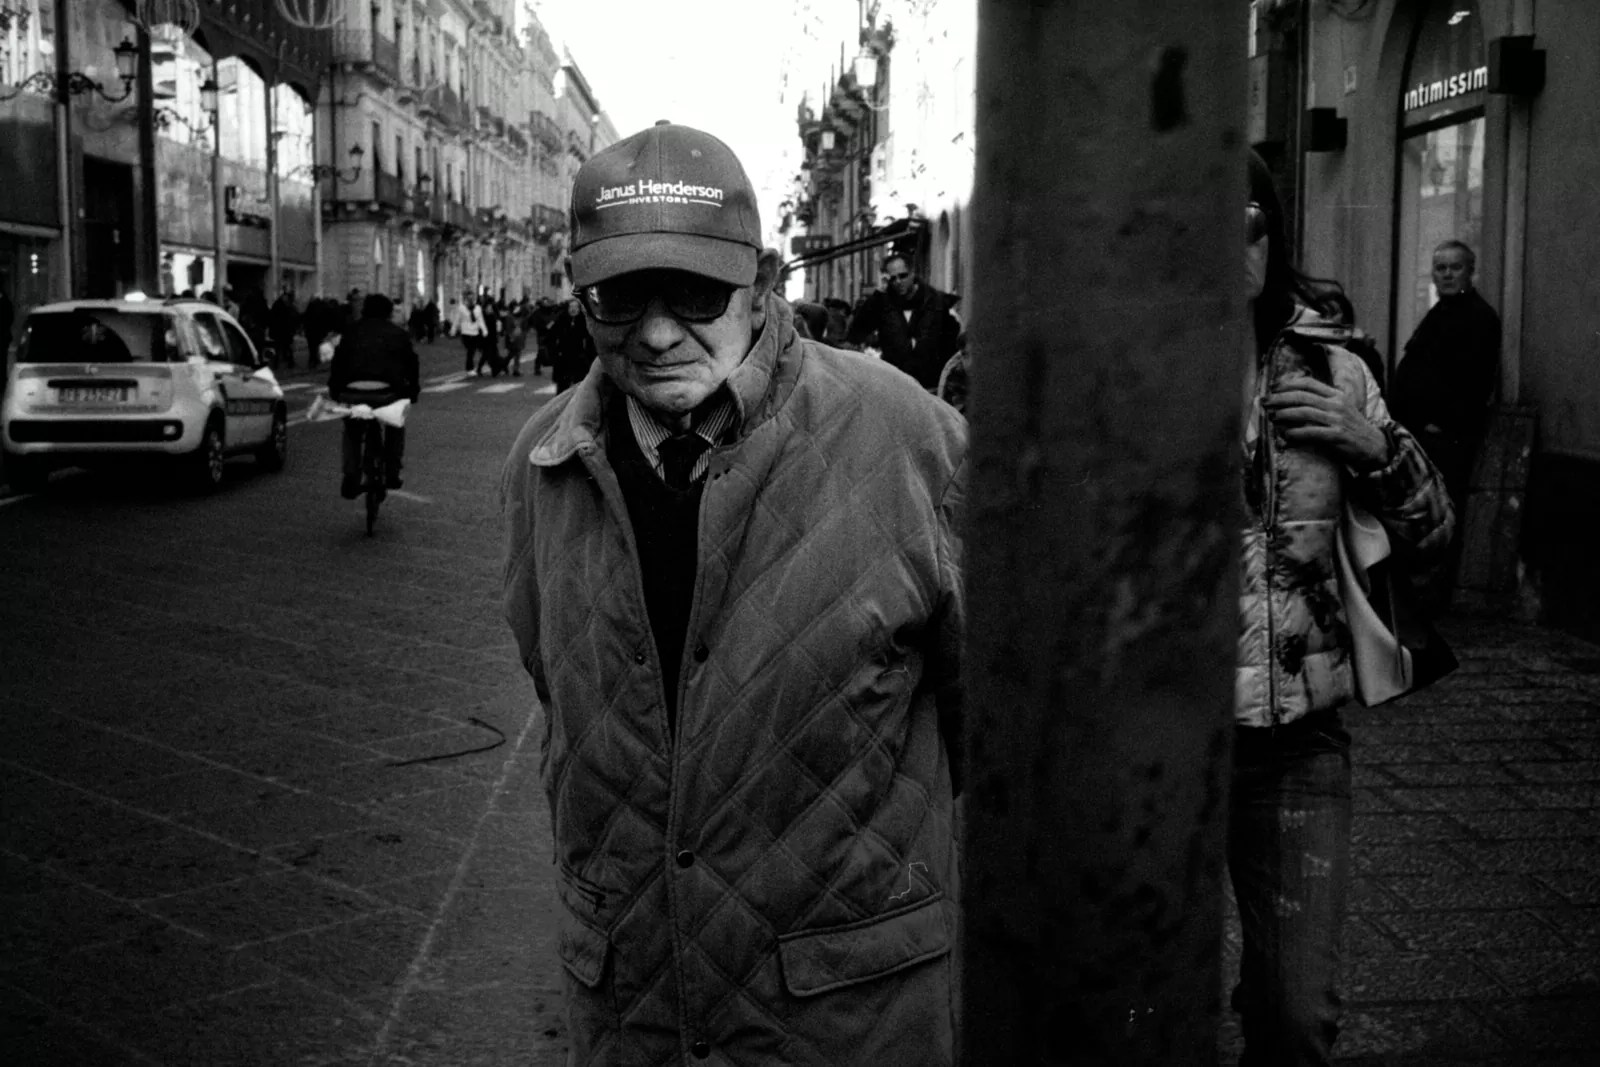 2017 12 24 0015 - In strada con Olympus Trip 35 - Catania Street Photography Session - fotostreet.it